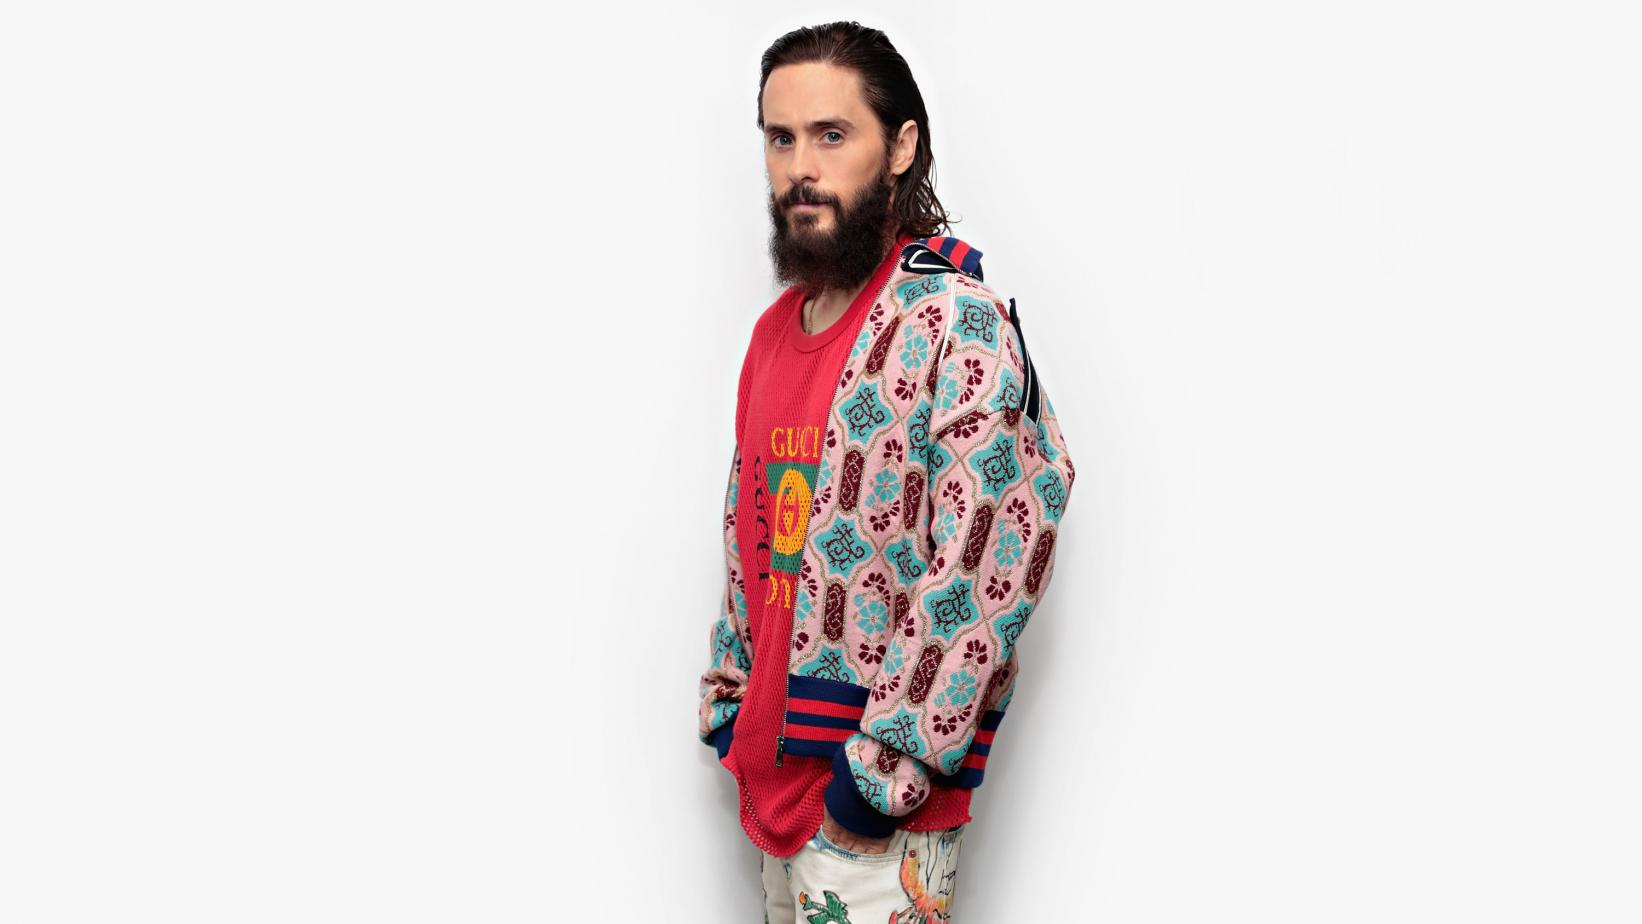 Jared Leto photographed in 2017